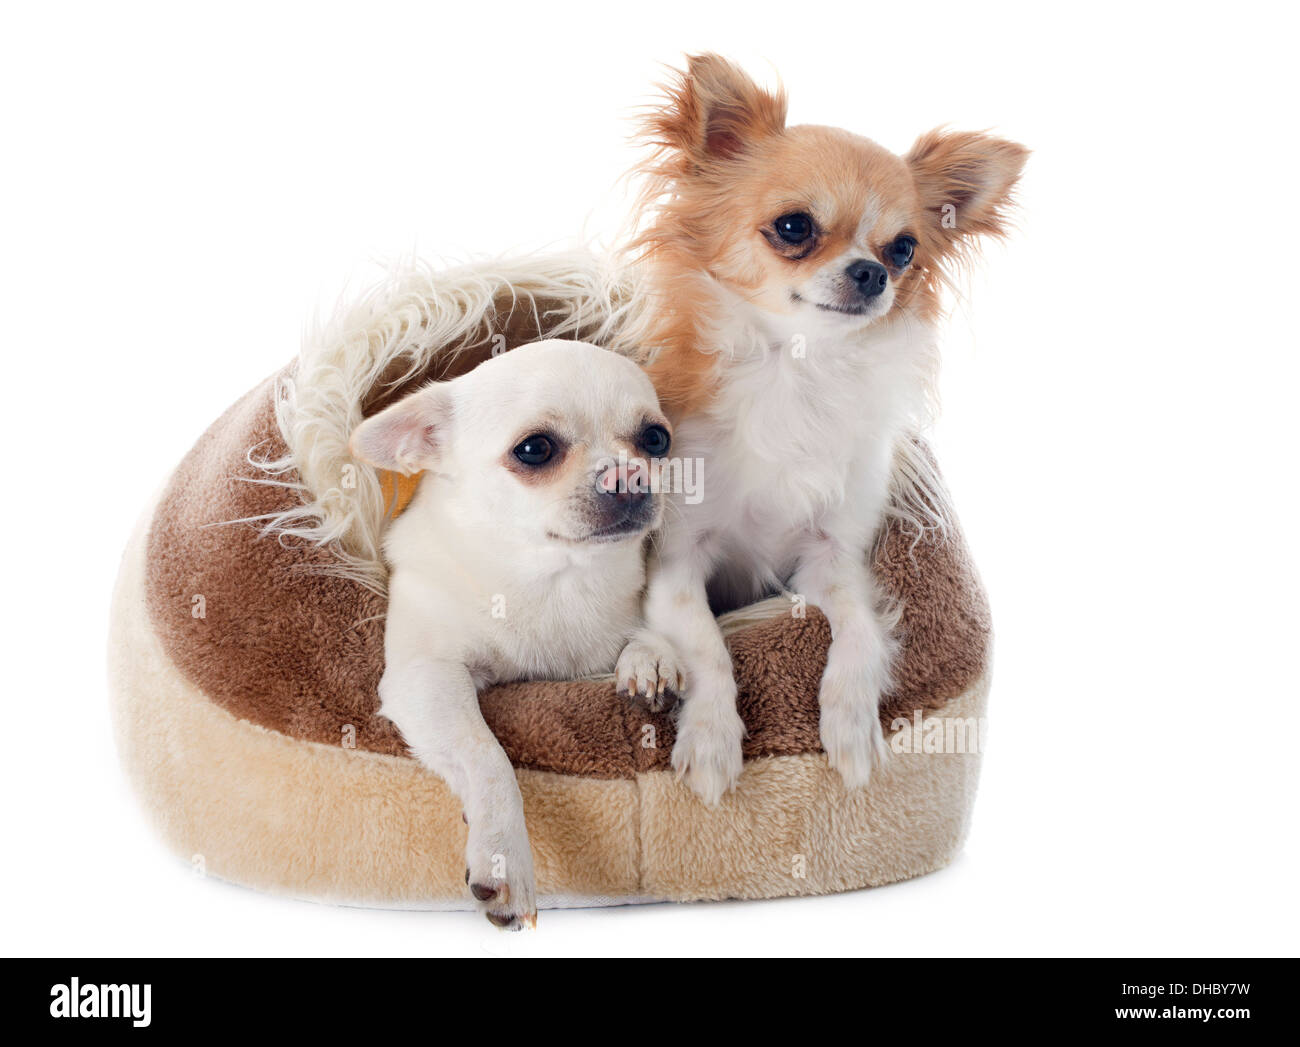 chihuahuas in dog bed in front of white background - Stock Image